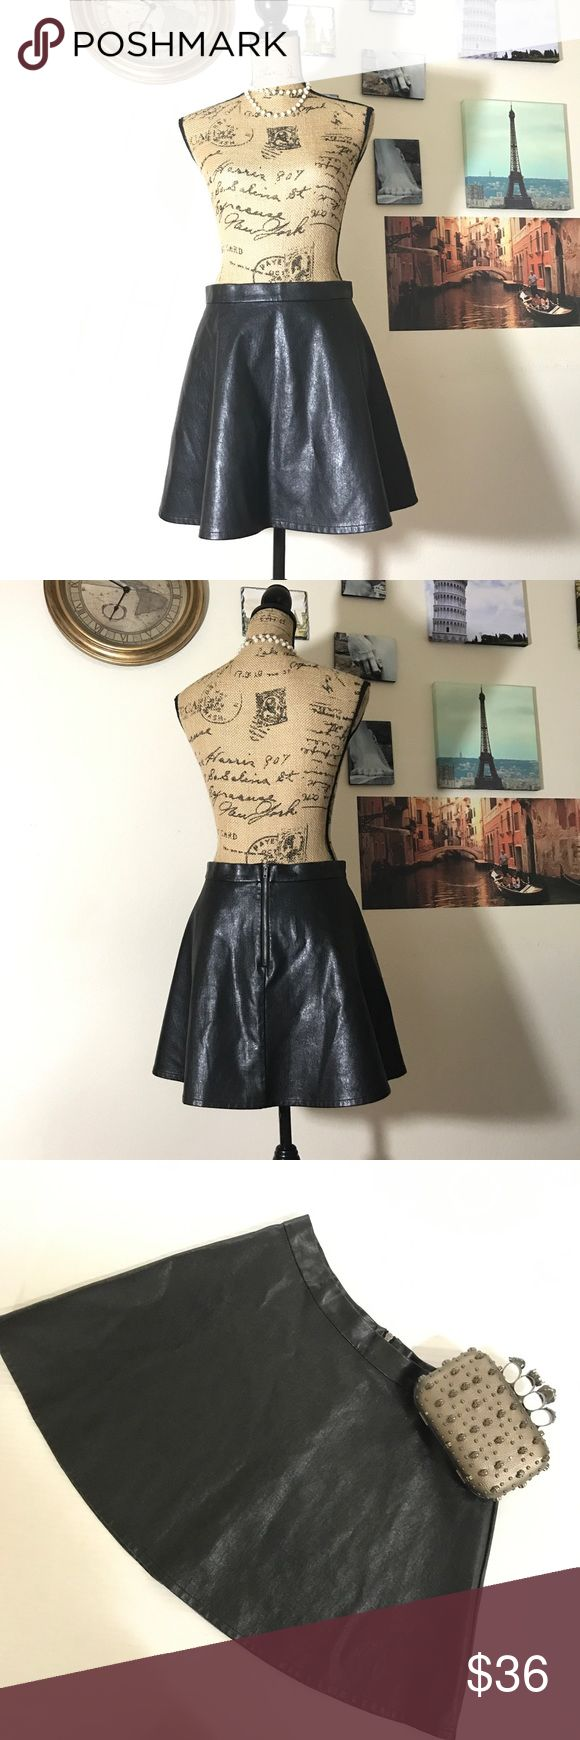 "American Eagle Outfitters faux leather skirt Sz 10 Adorable skater skirt with a zipper in the rear.  Waist measures 15"" across the front flat laid and is 15.5"" in length.  EUC - flawless!  03111111117 American Eagle Outfitters Skirts Circle & Skater"